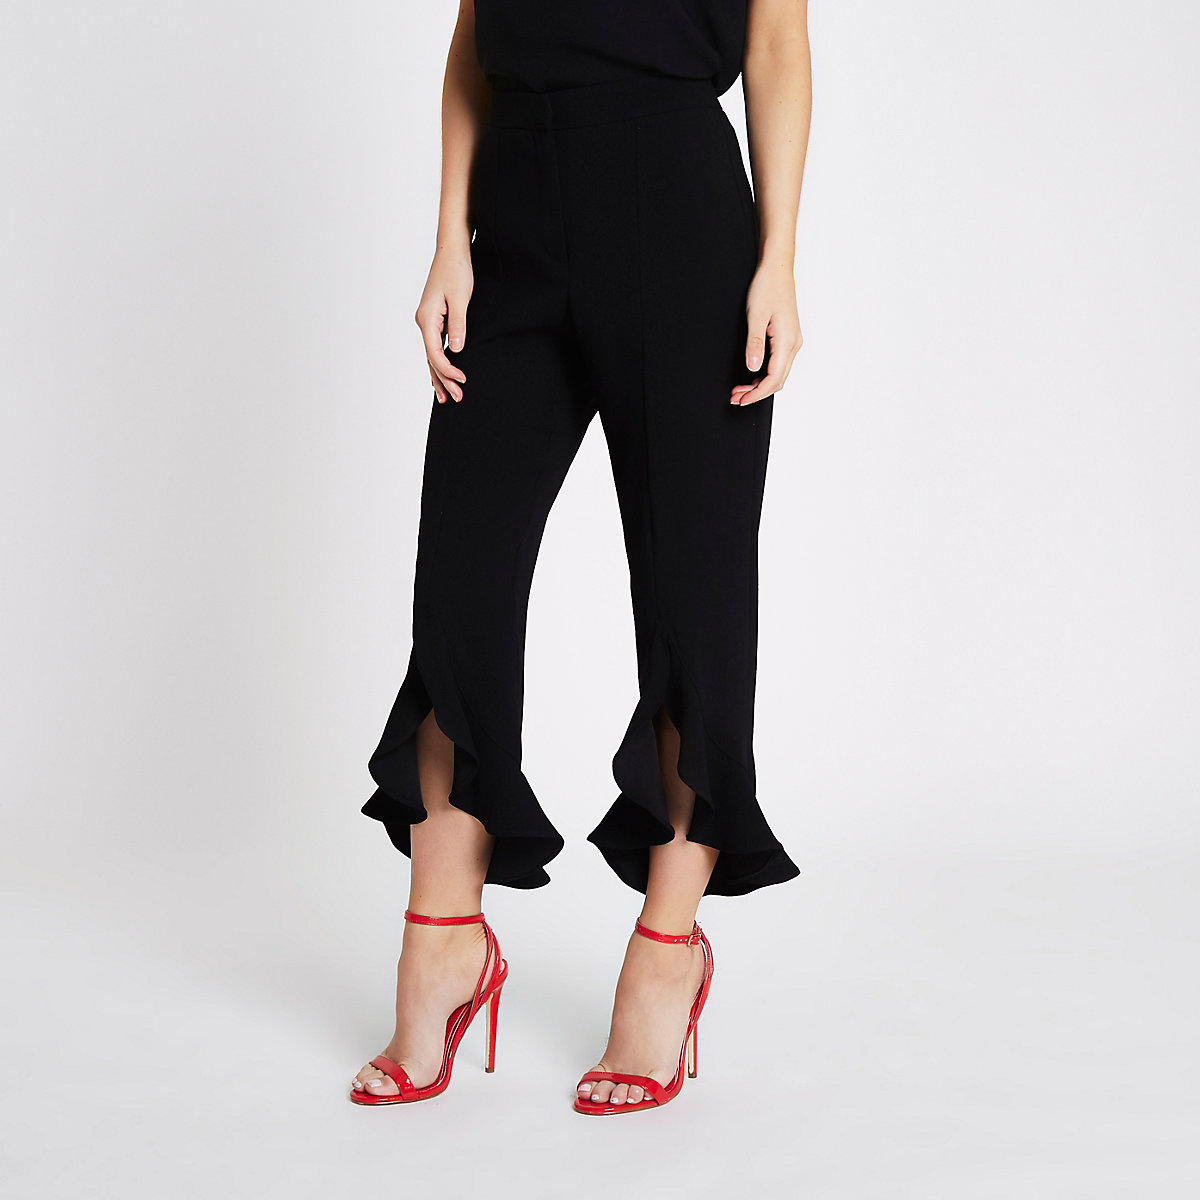 Petite black split frill hem pants